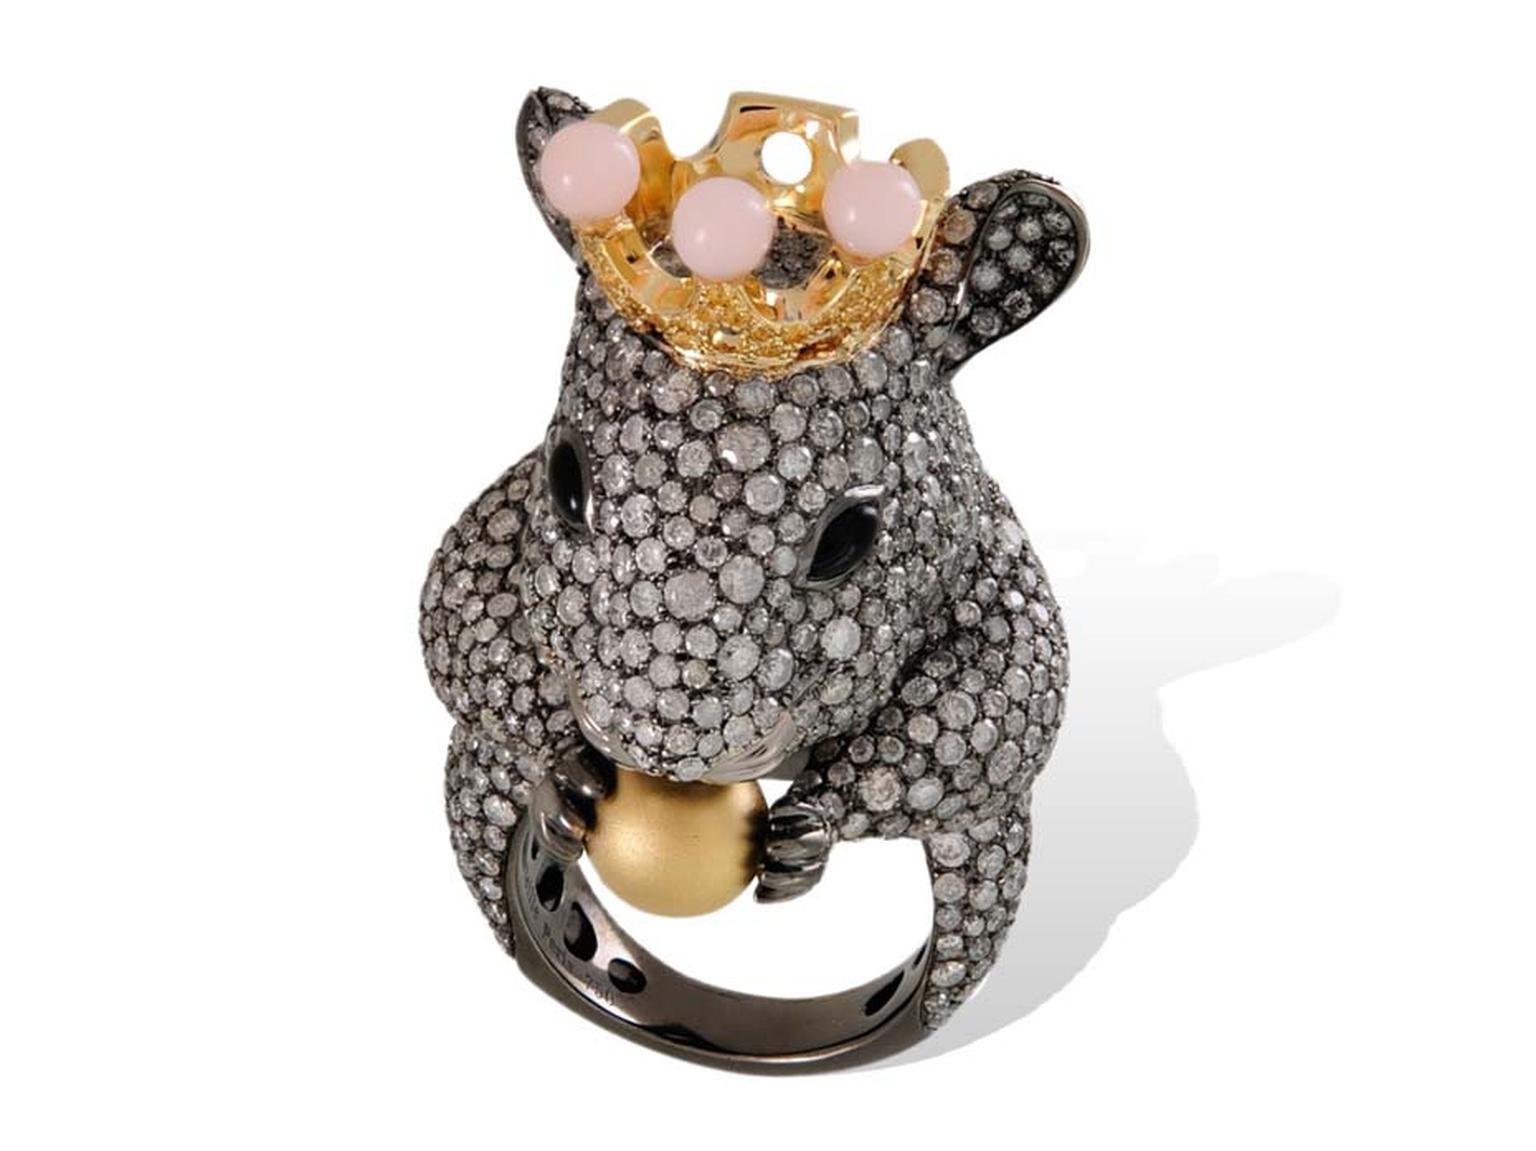 Lydia Courteille Mouse ring in gold from the Animal Farm collection, set with diamonds, pink opals and a golden pearl